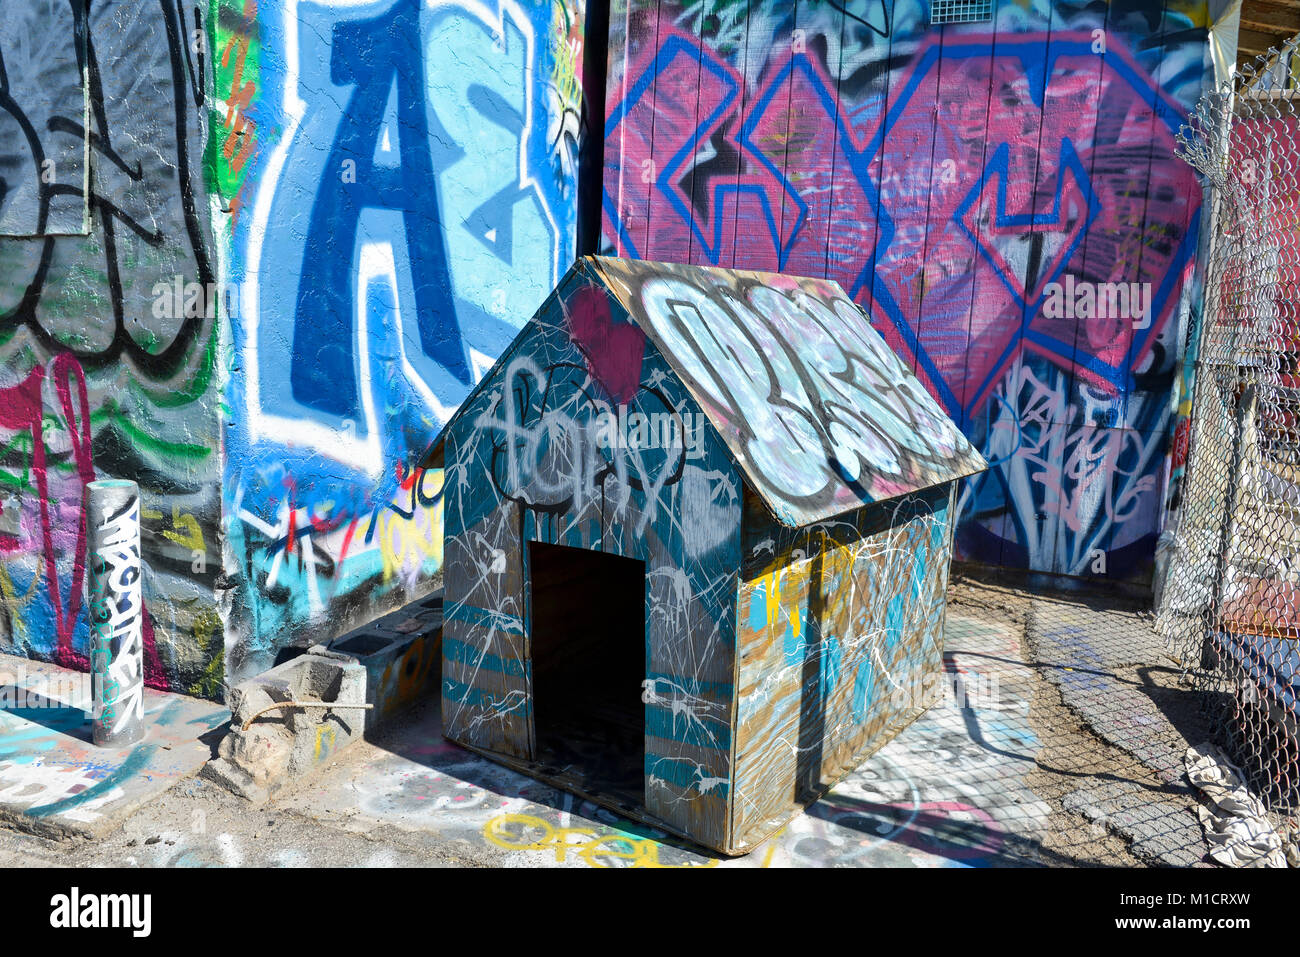 Graffiti art on a doghouse in downtown las vegas stock image